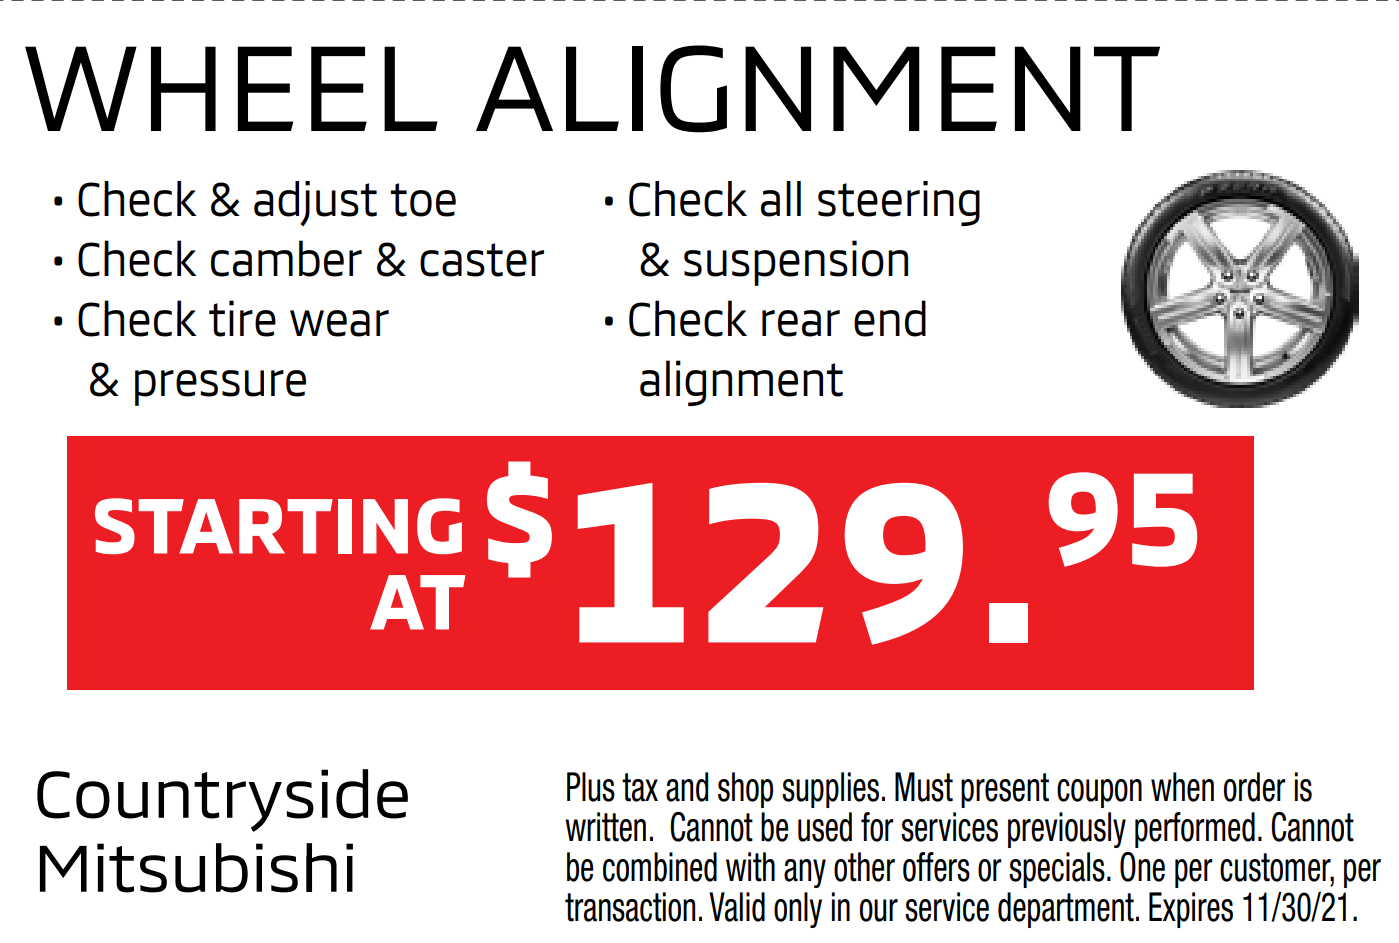 Wheel alignment starting at $129.95 - Check and adjust toe, camber & caster, tire wear & pressure, steering & suspension, and rear end alignment